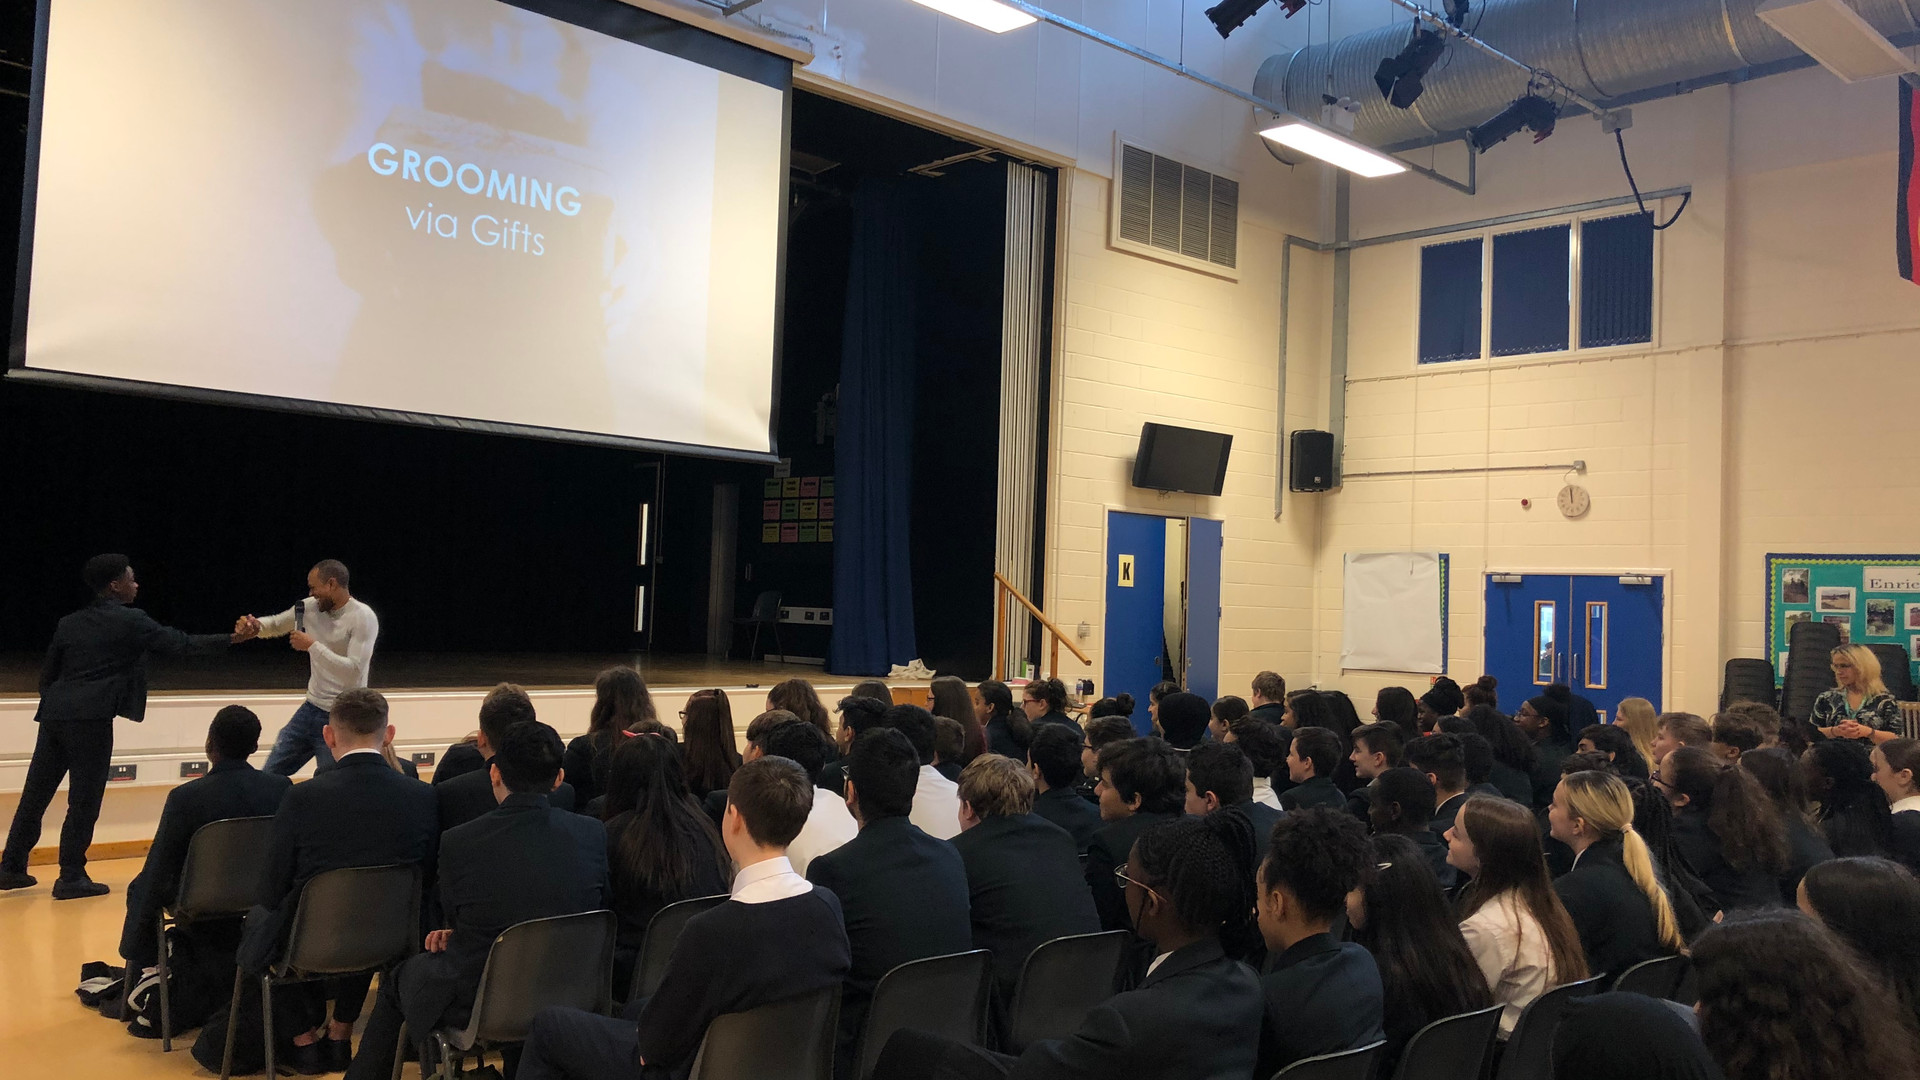 County Lines Assembly, Lea Valley Academy, Enfield